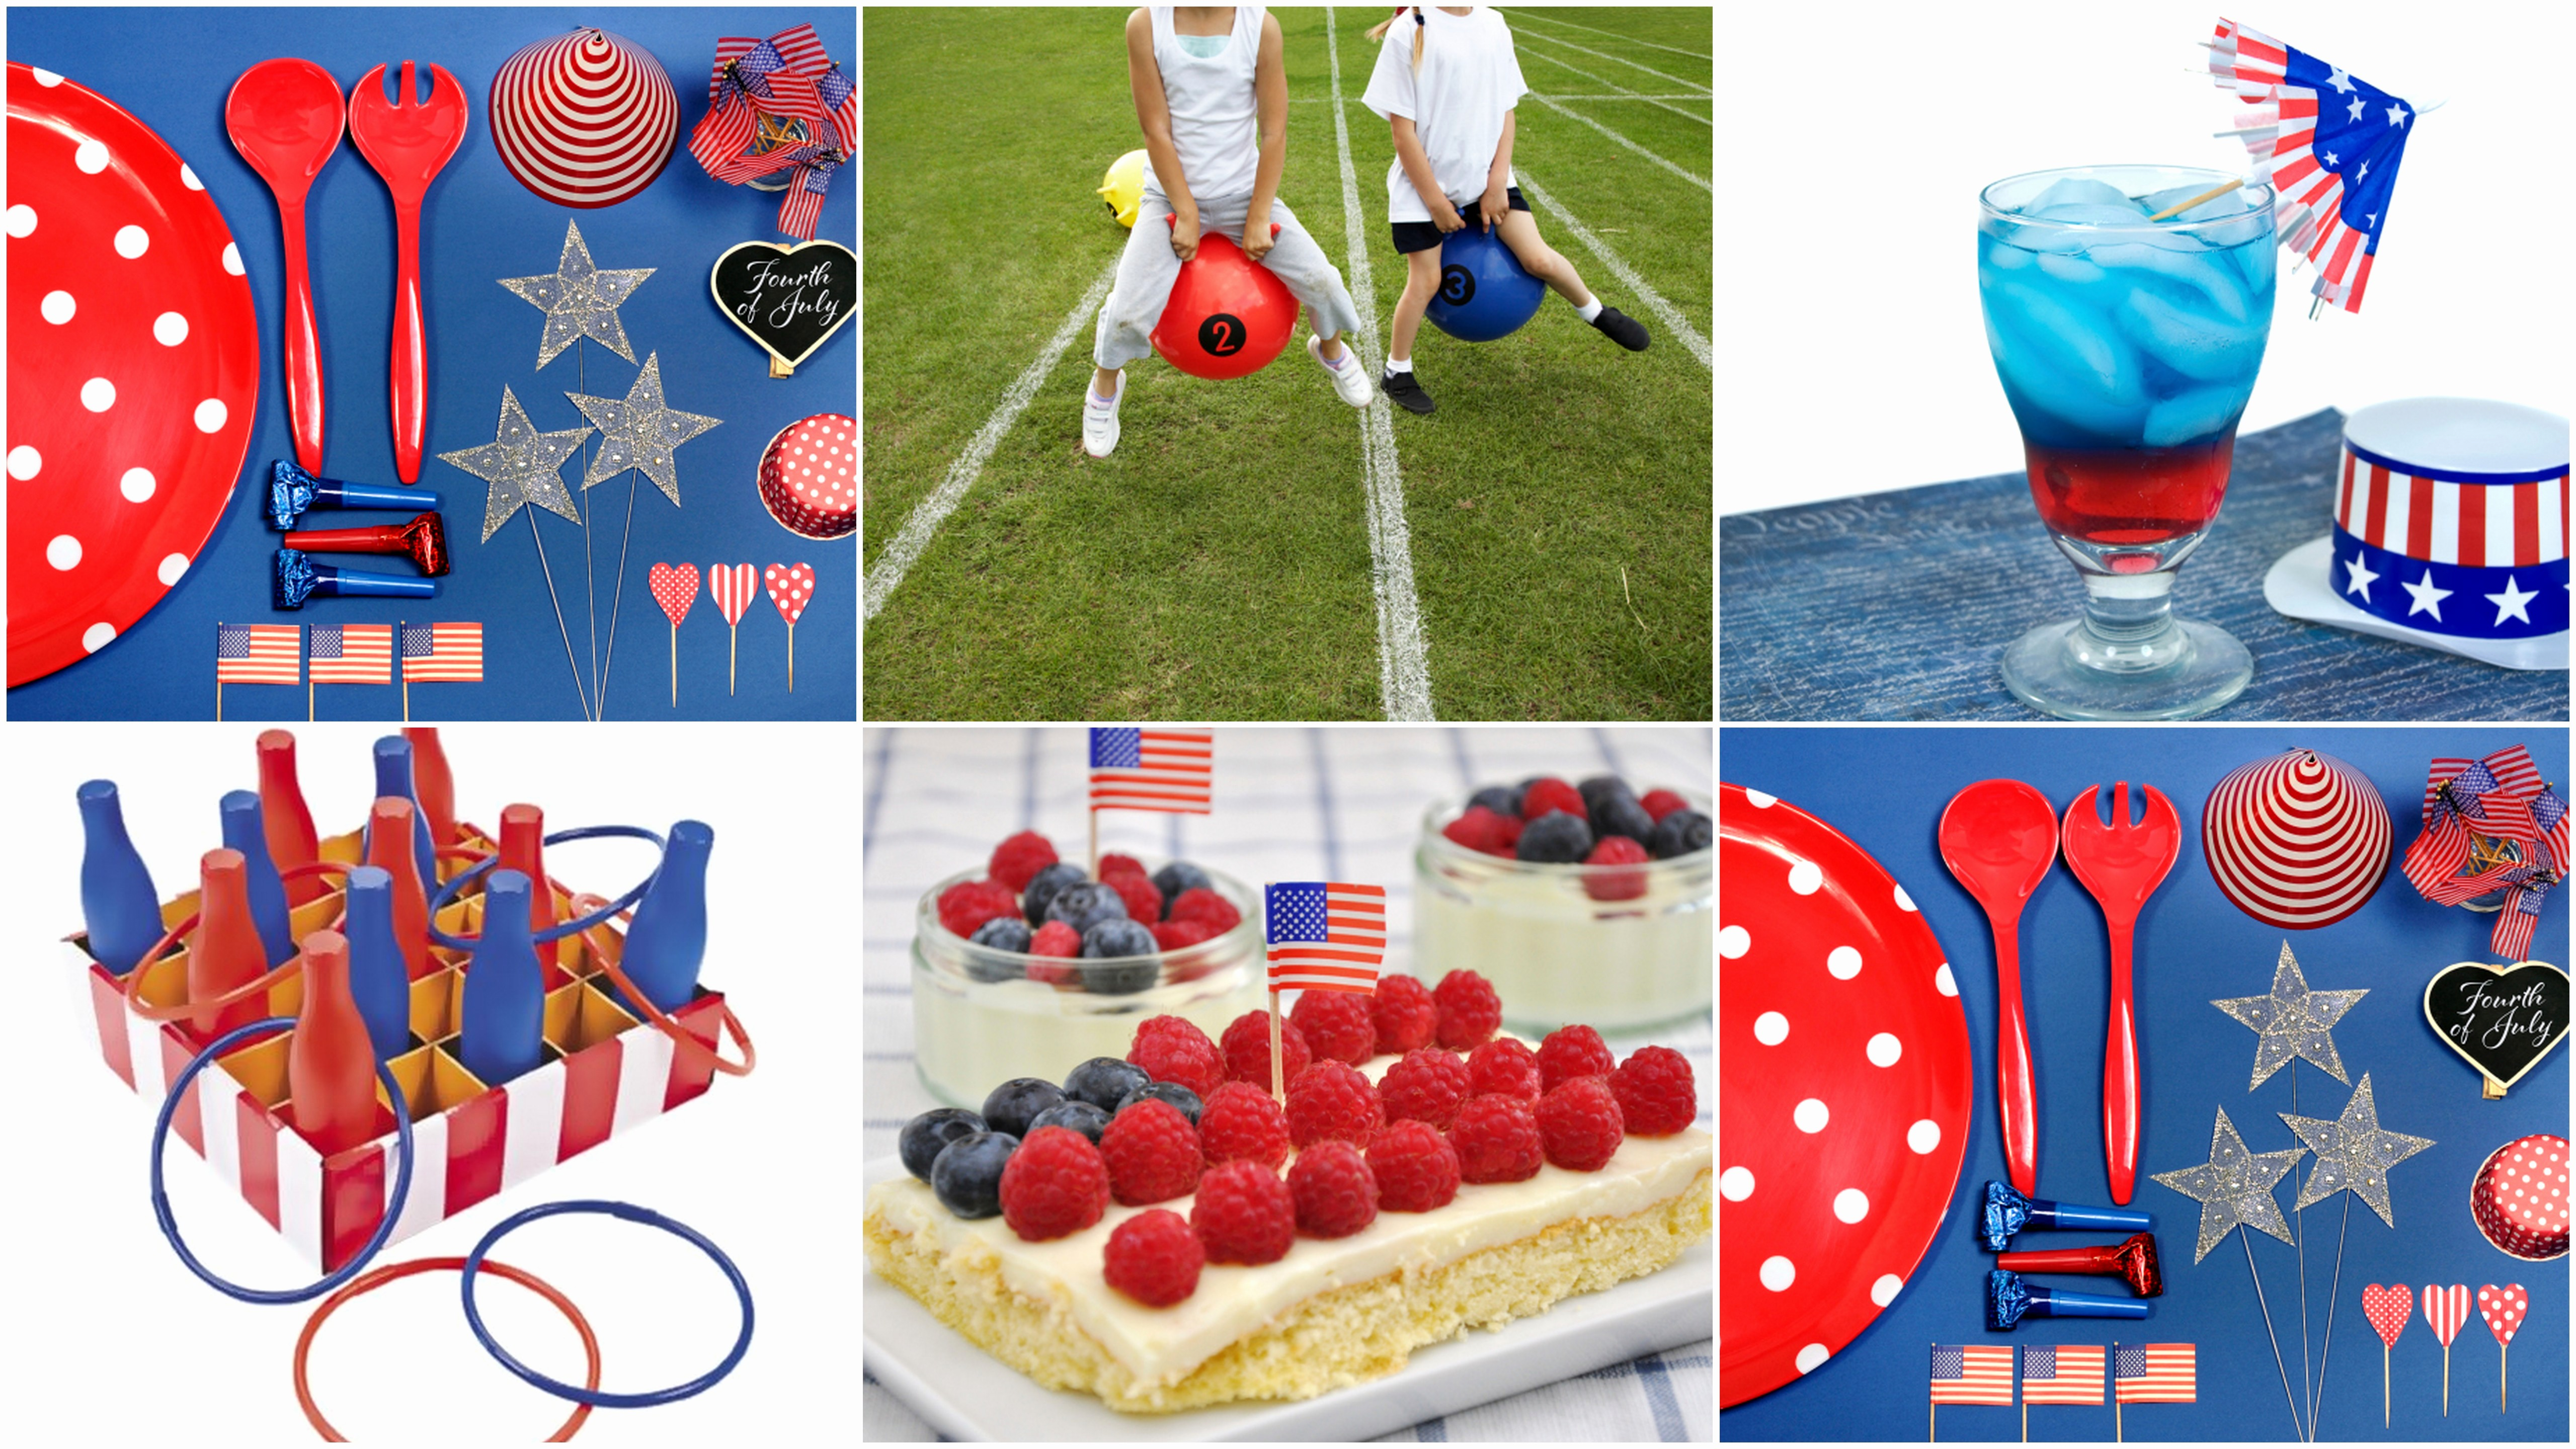 4th Of July Party Invites Unique 4th Of July Party Ideas Fun Games Planning themes and